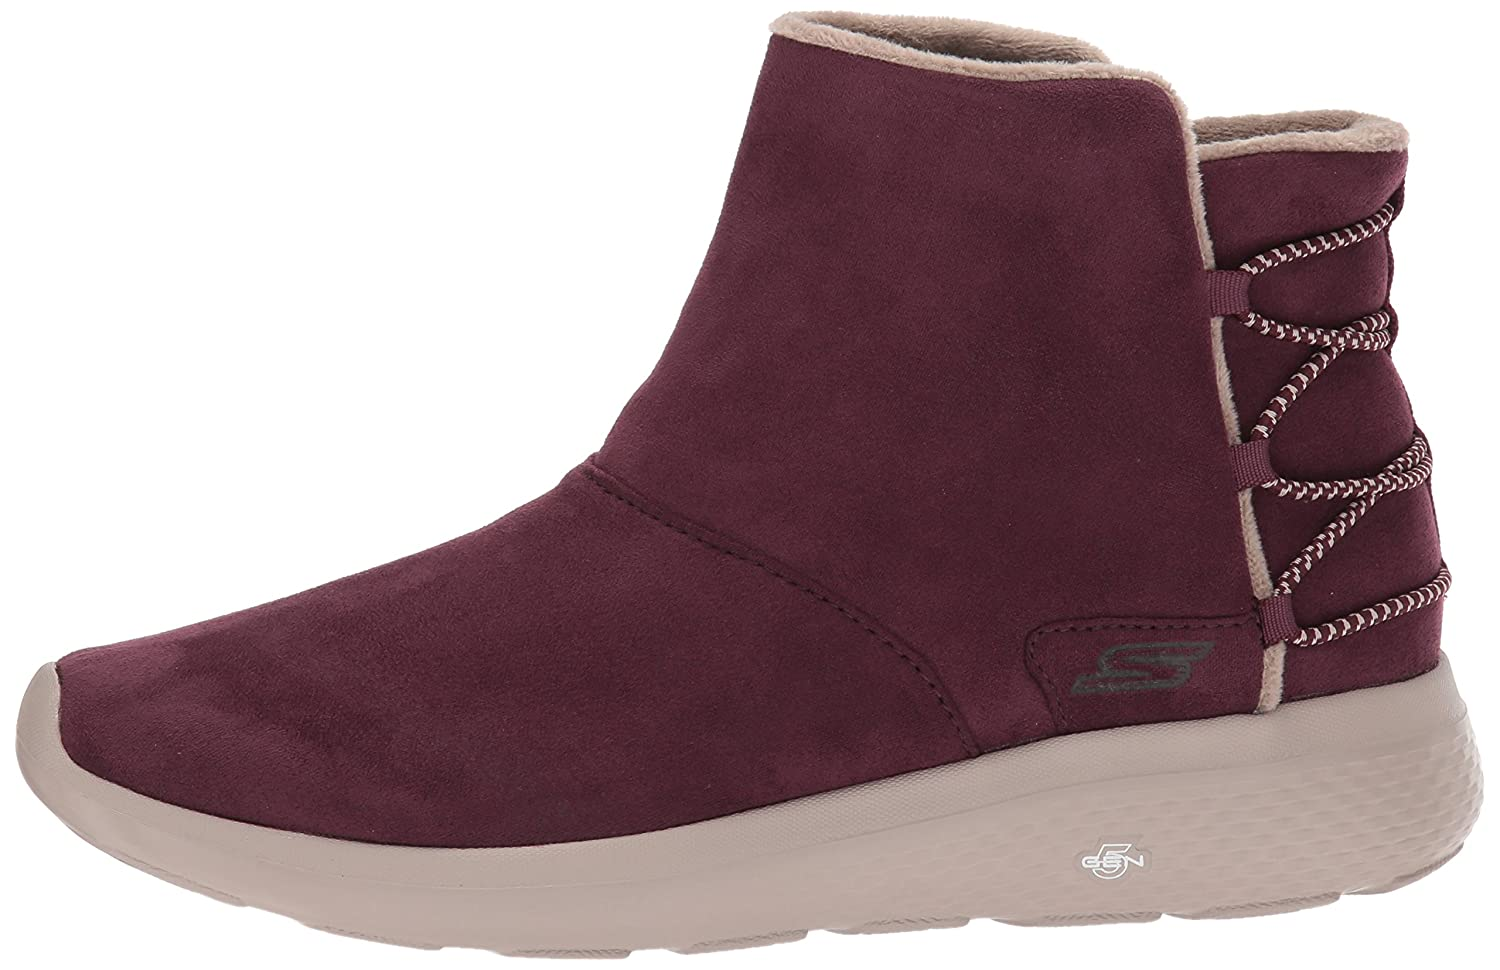 Skechers Women's on-The-Go City 2-Adapt Winter Boot B06X9QNRX2 6.5 B(M) US|Burgundy